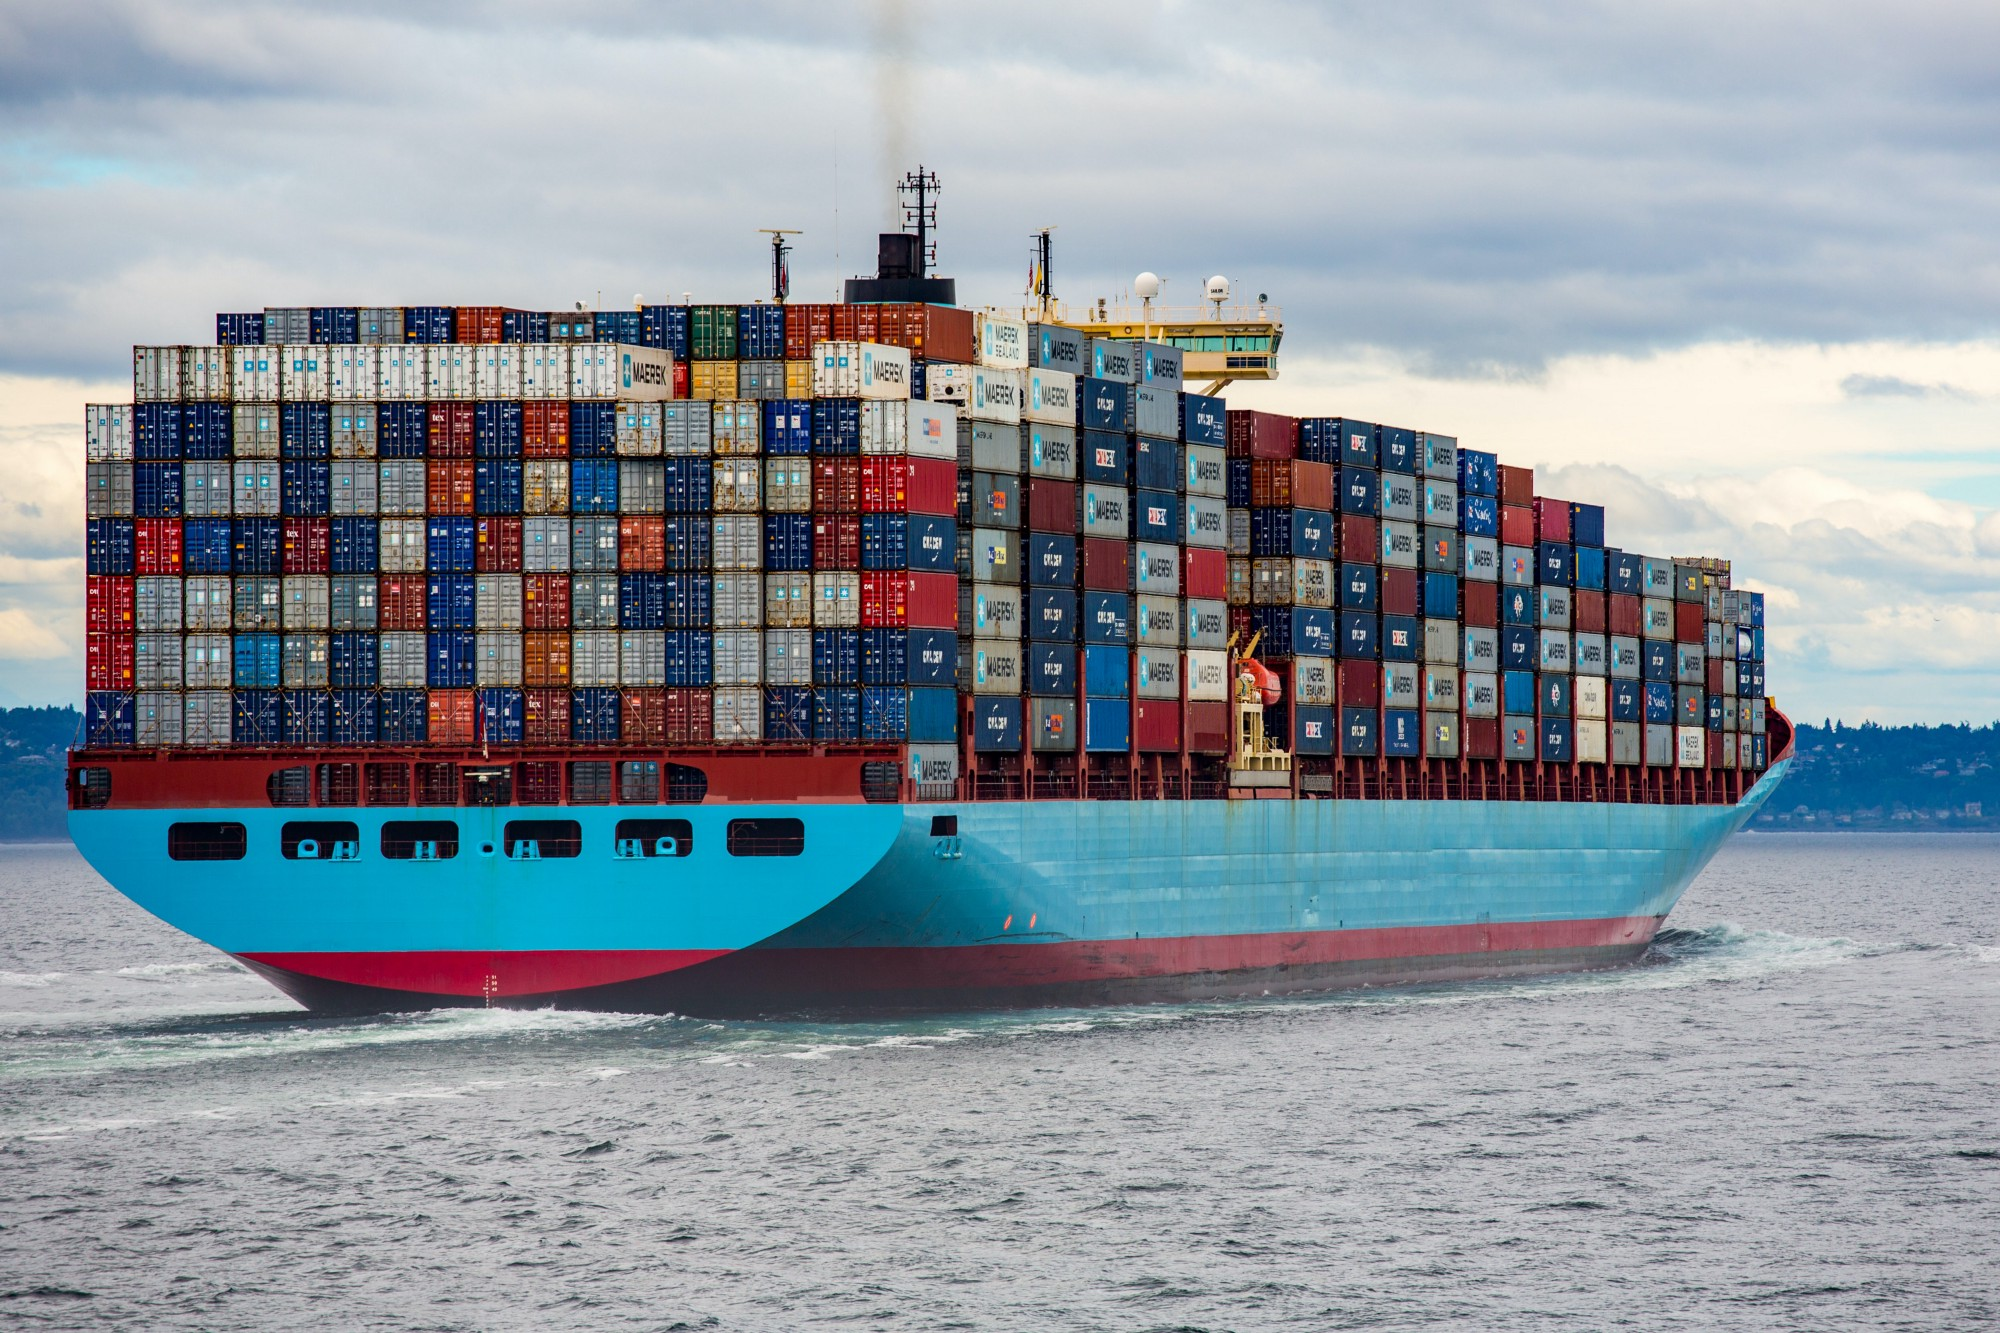 Blue cargo ship filled with containers.